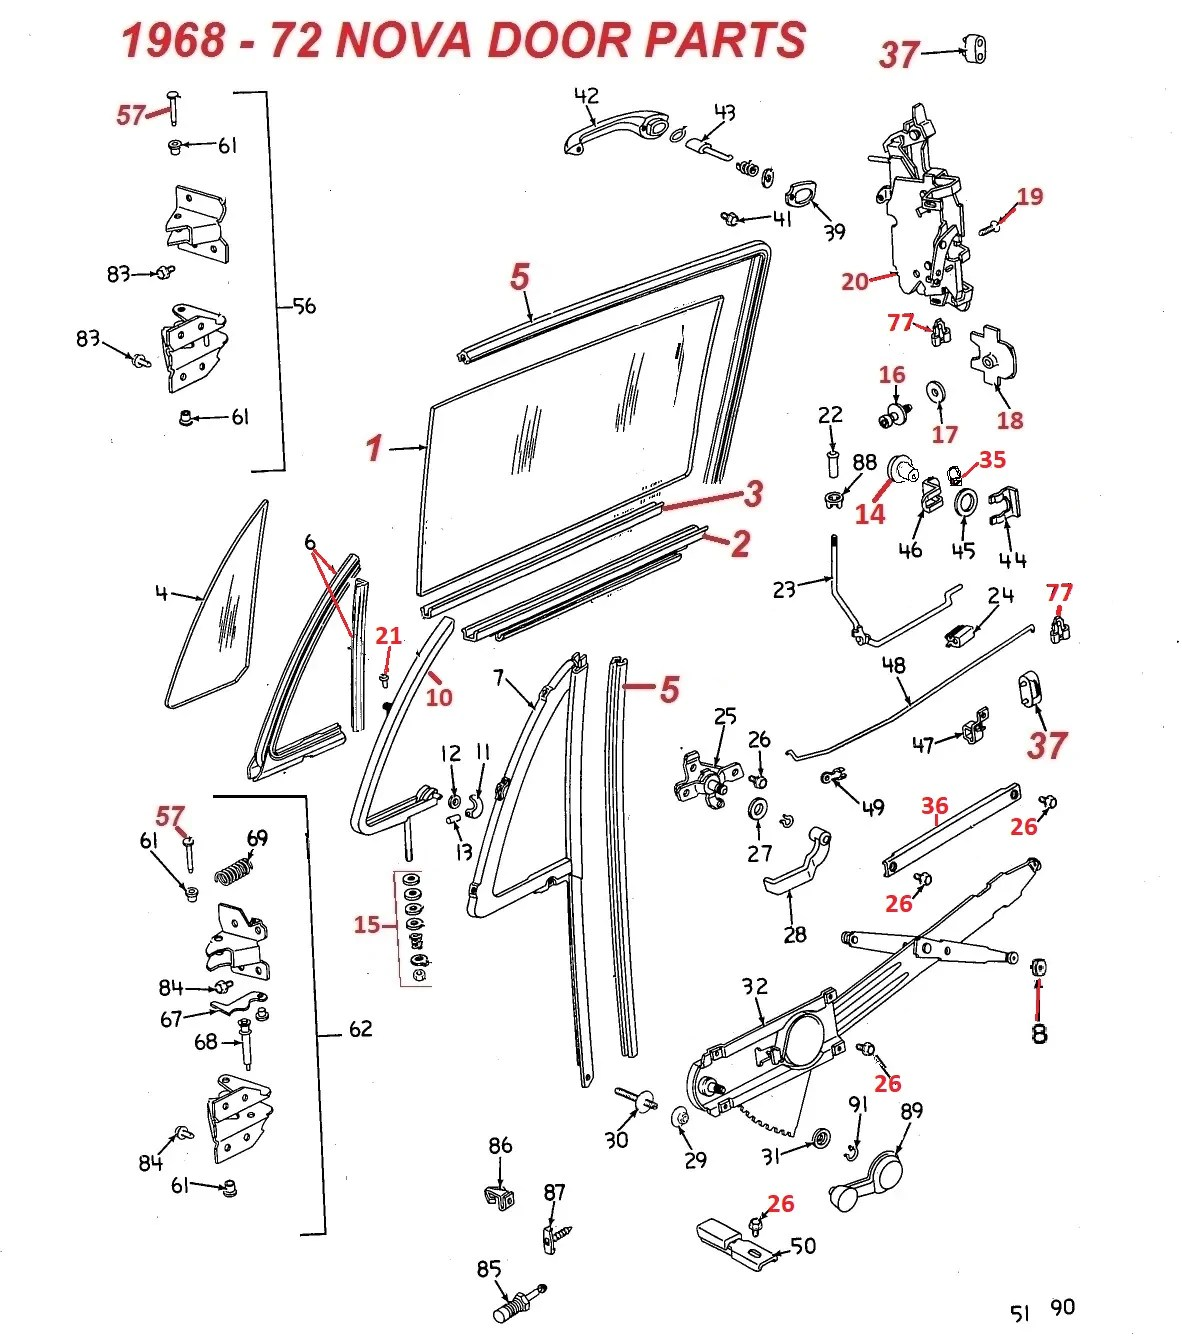 small resolution of 1968 72 nova 71 72 ventura door parts chicago muscle car parts inc car frame schematic car door schematic